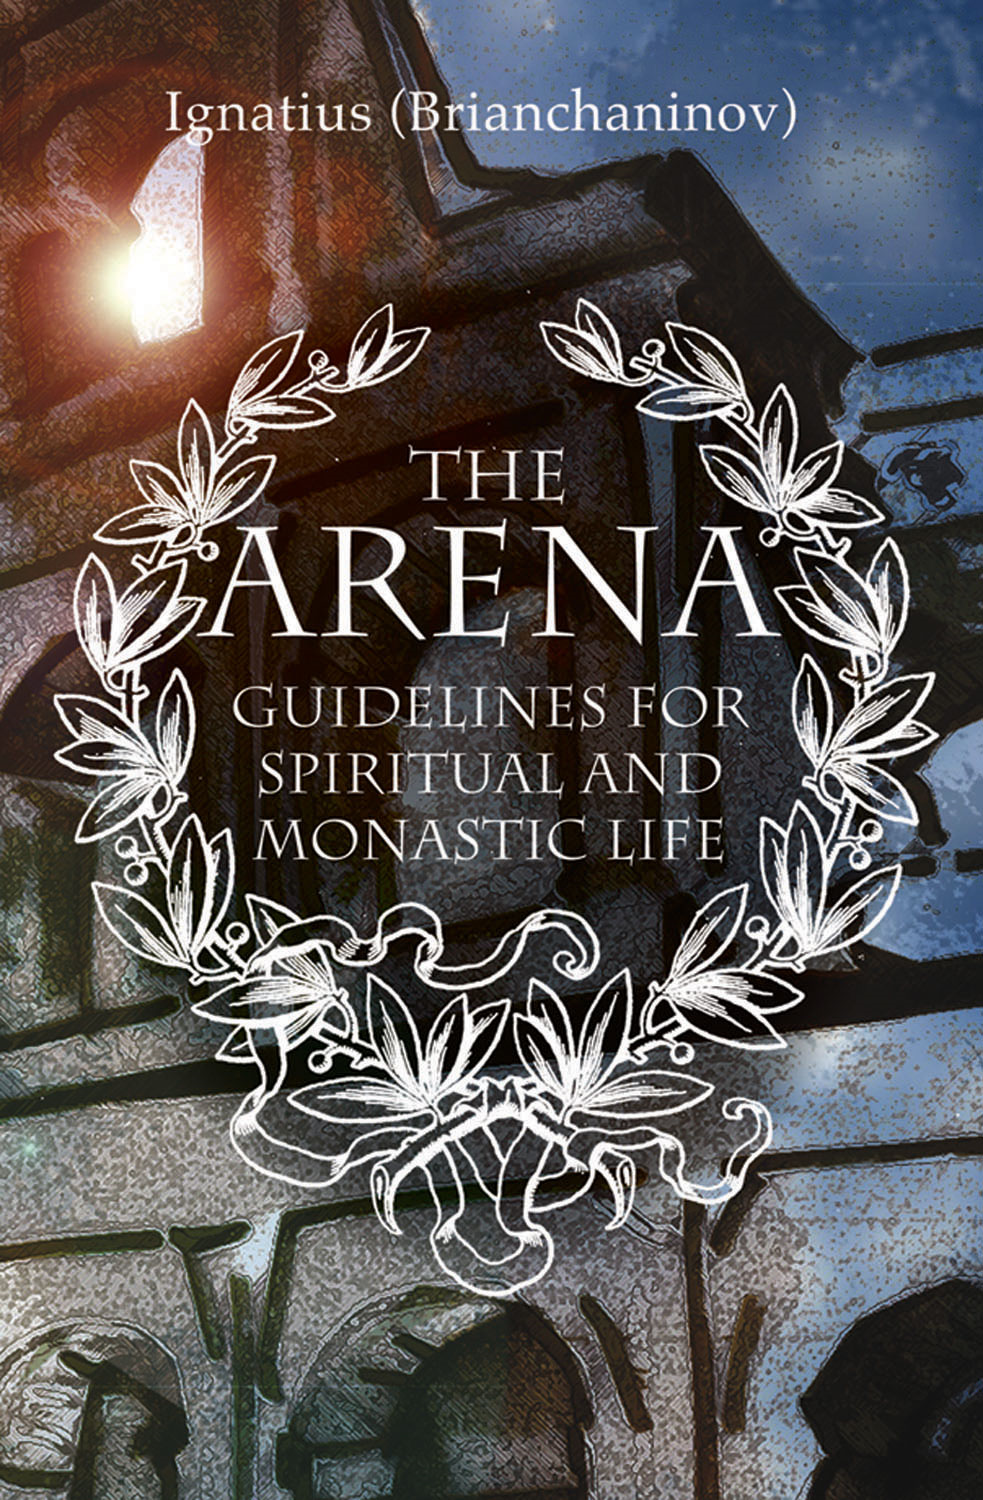 The Arena: Guidelines for Spiritual and Monastic Life By: Ignatius Brianchaninov